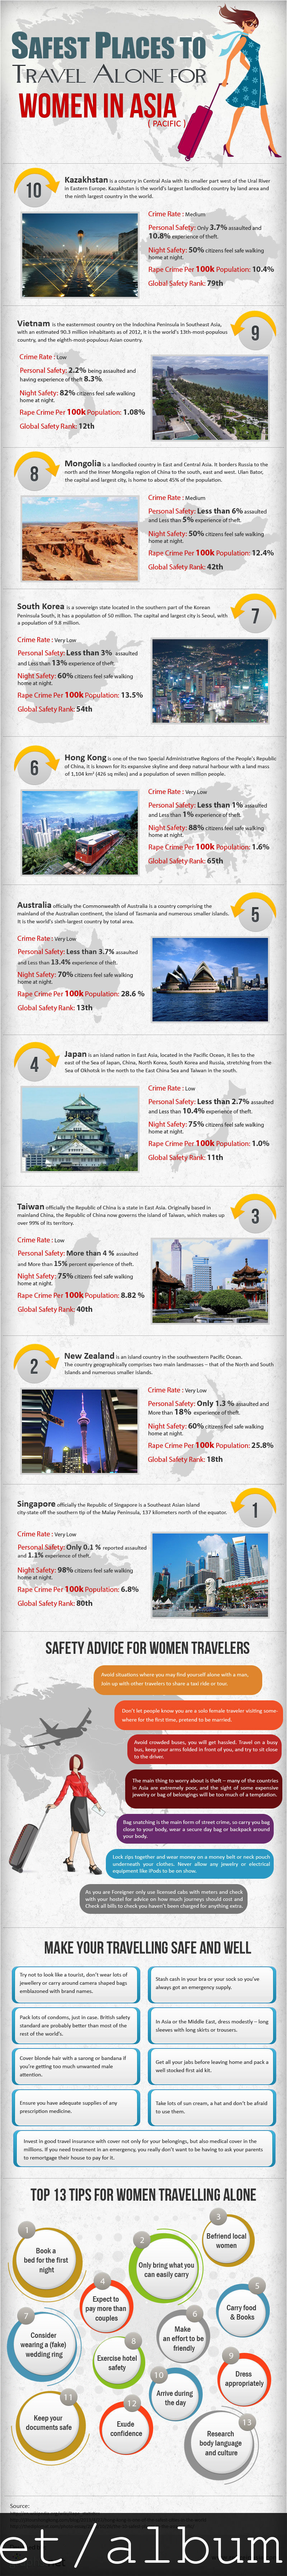 Safest-Places-to-Travel-alone-for-Women-in-Asia-1